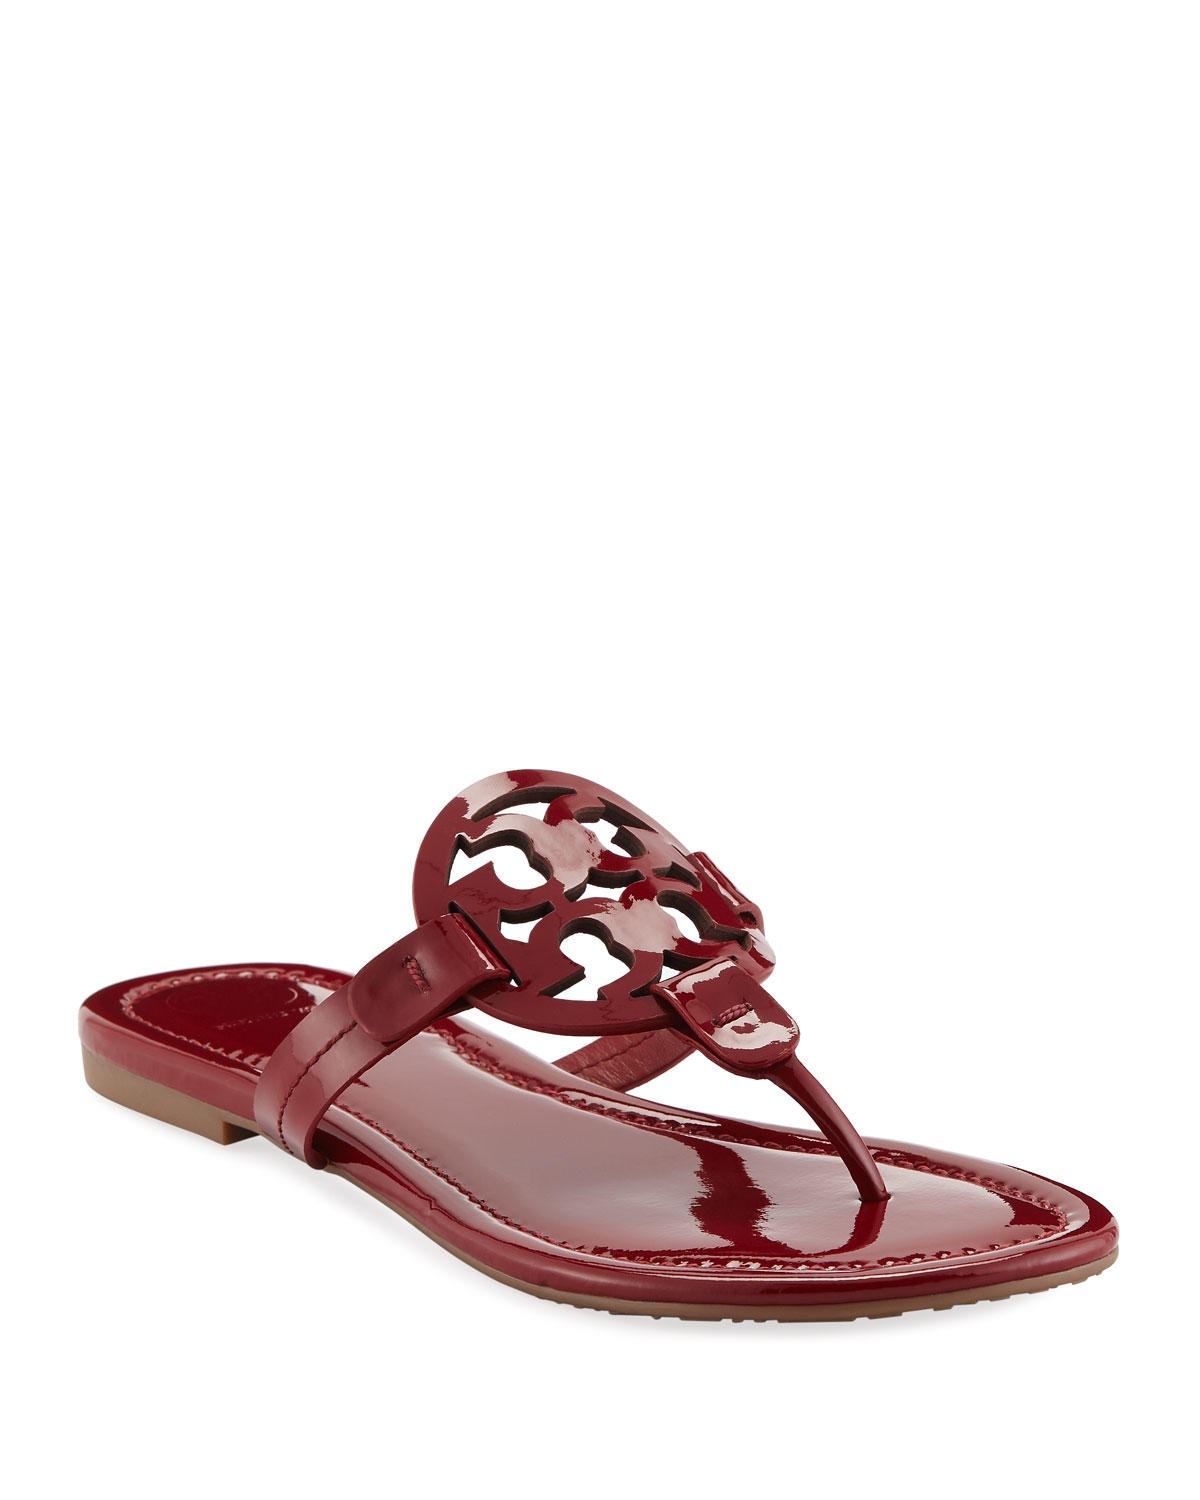 784e95356 Tory Burch Miller Medallion Patent Leather Flat Thong Sandals ...